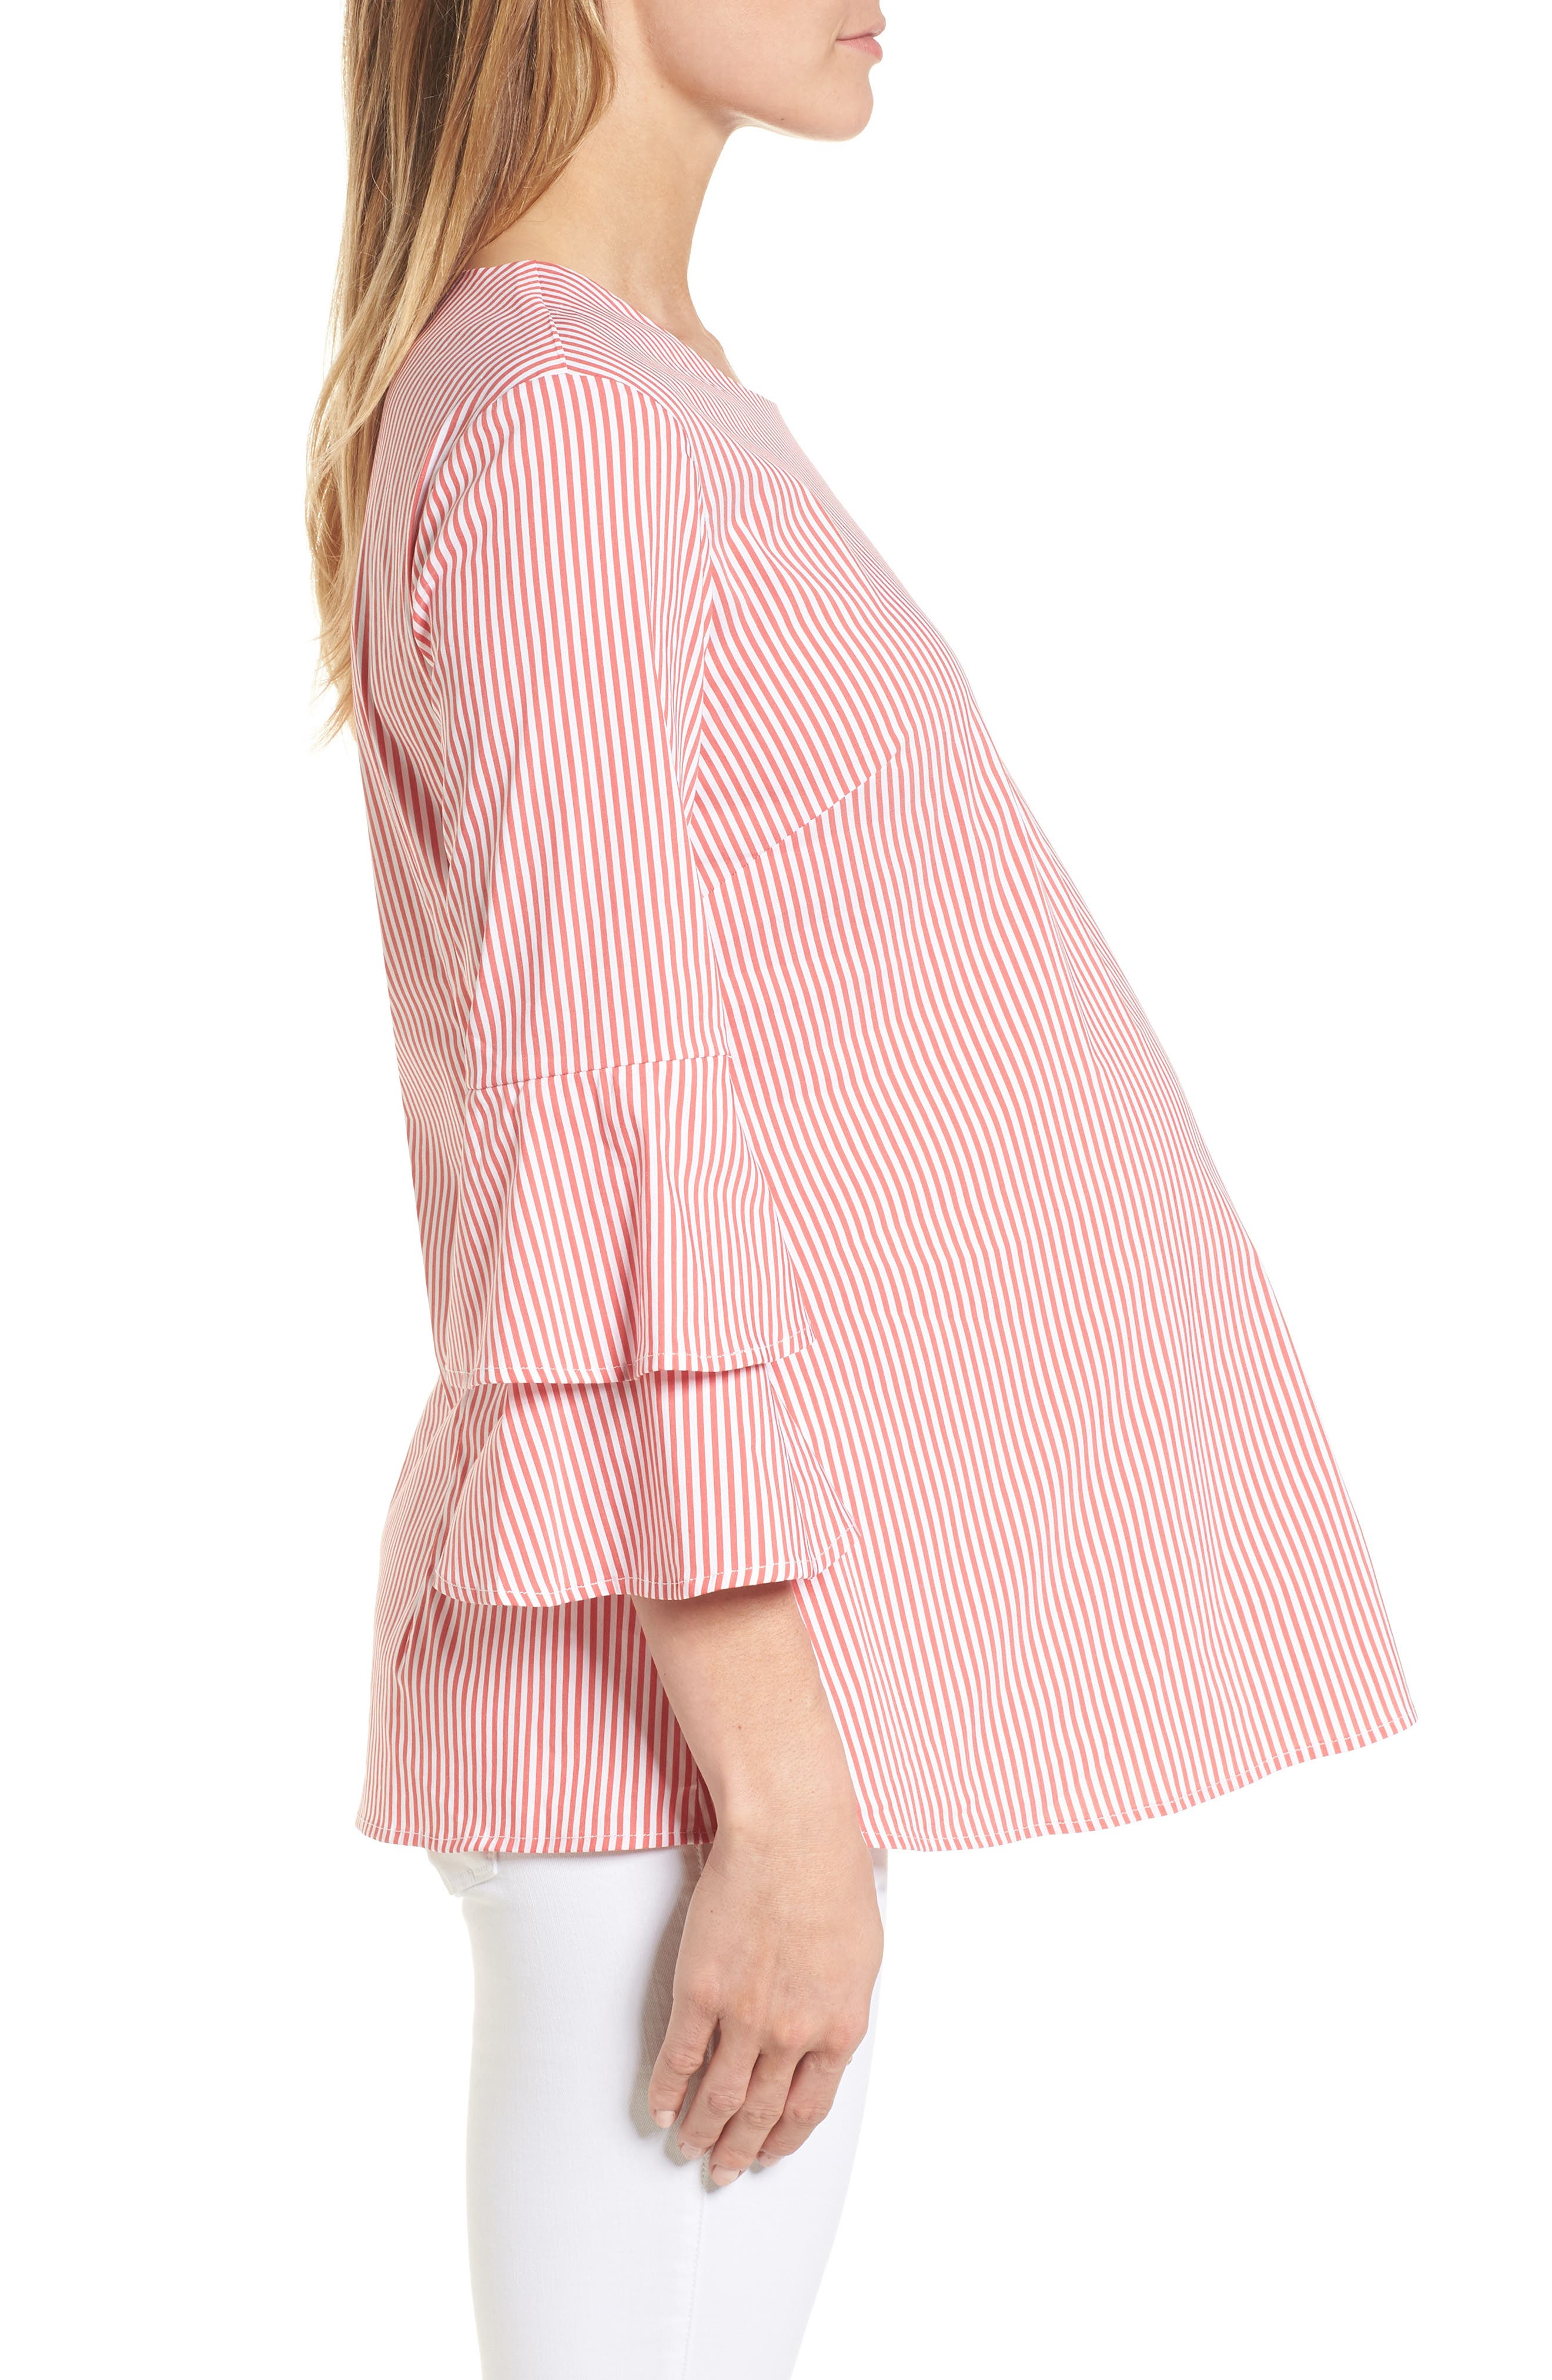 Adrianna Maternity Top,                             Alternate thumbnail 3, color,                             Red/White Stripe